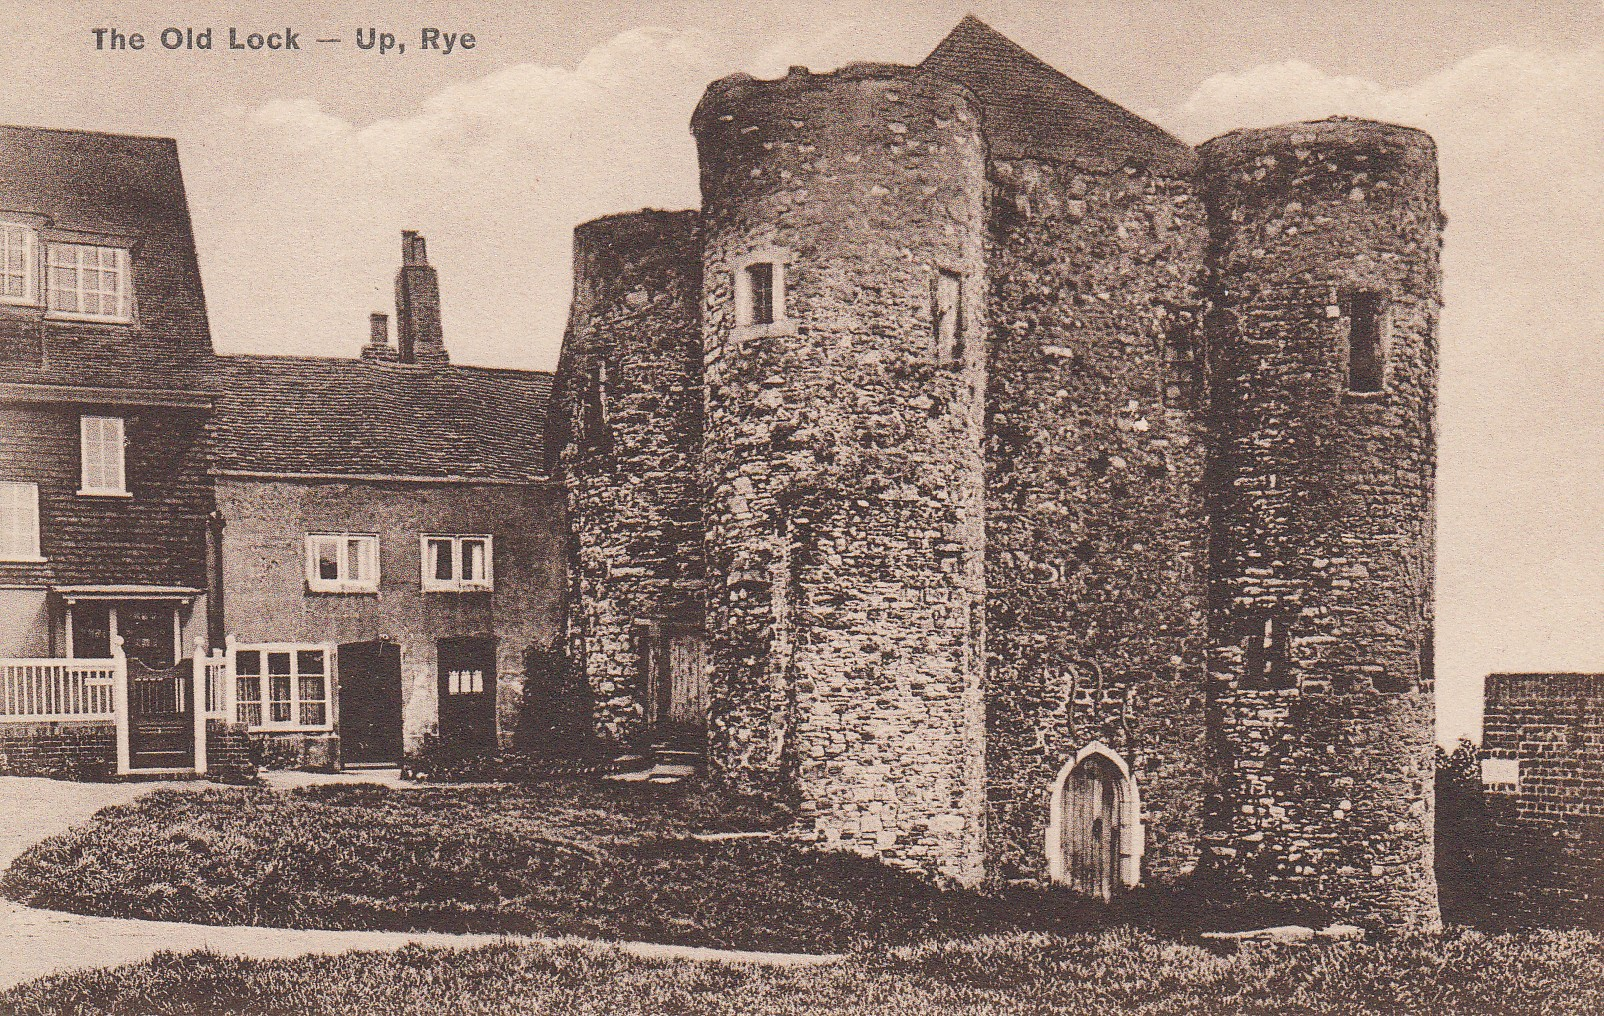 The Old Lock-Up, Rye. (Unknown date. Souvenir postcard)